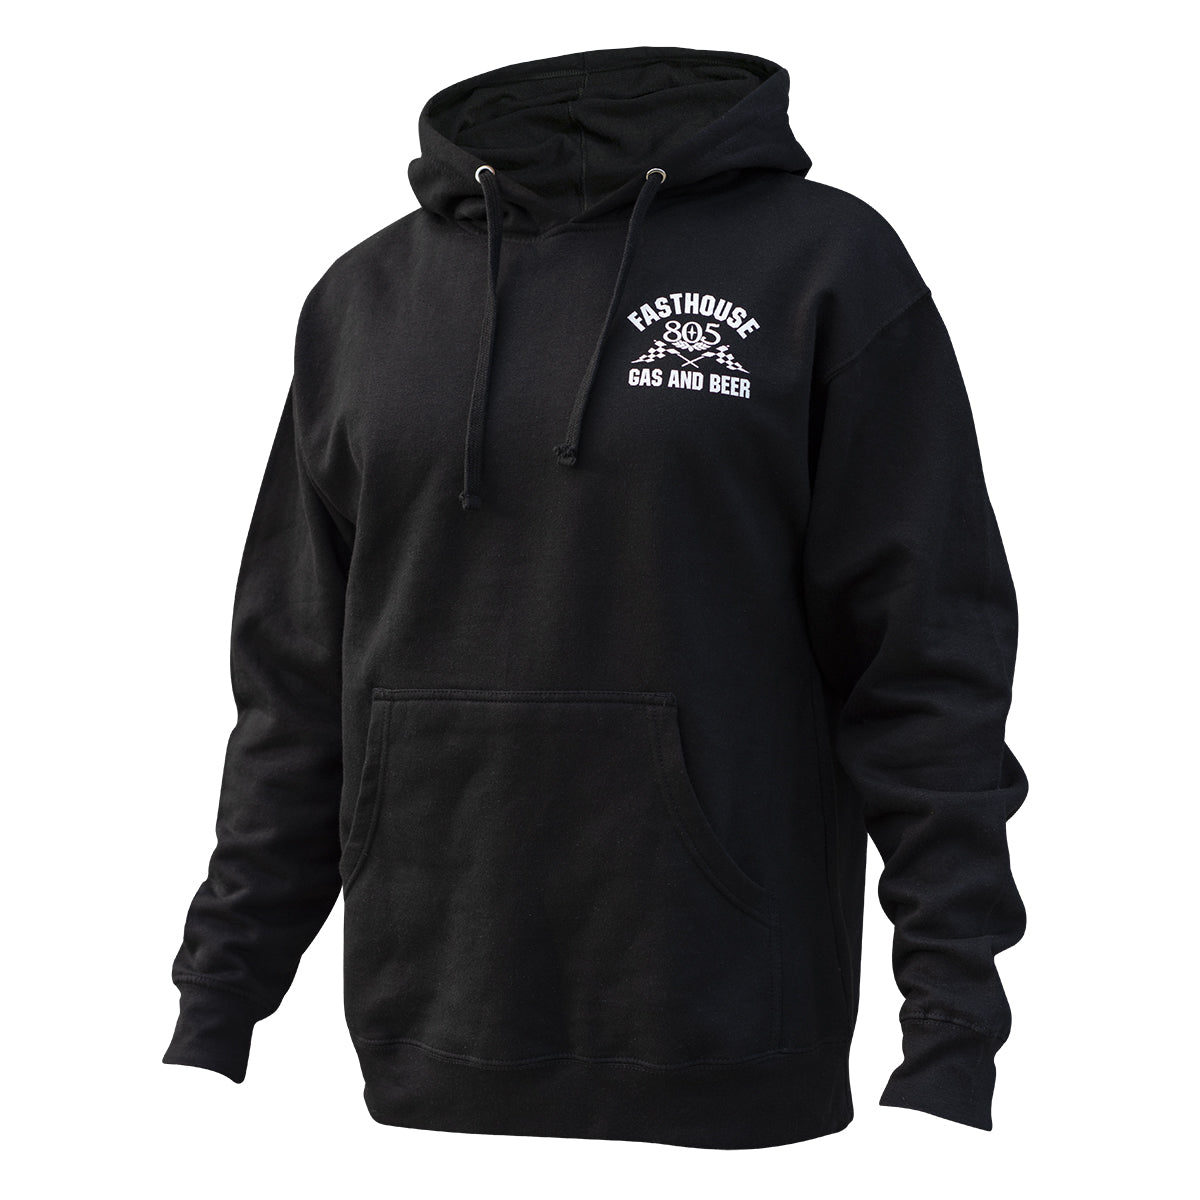 Fasthouse - 805 Podium Pullover Hoodie - Black